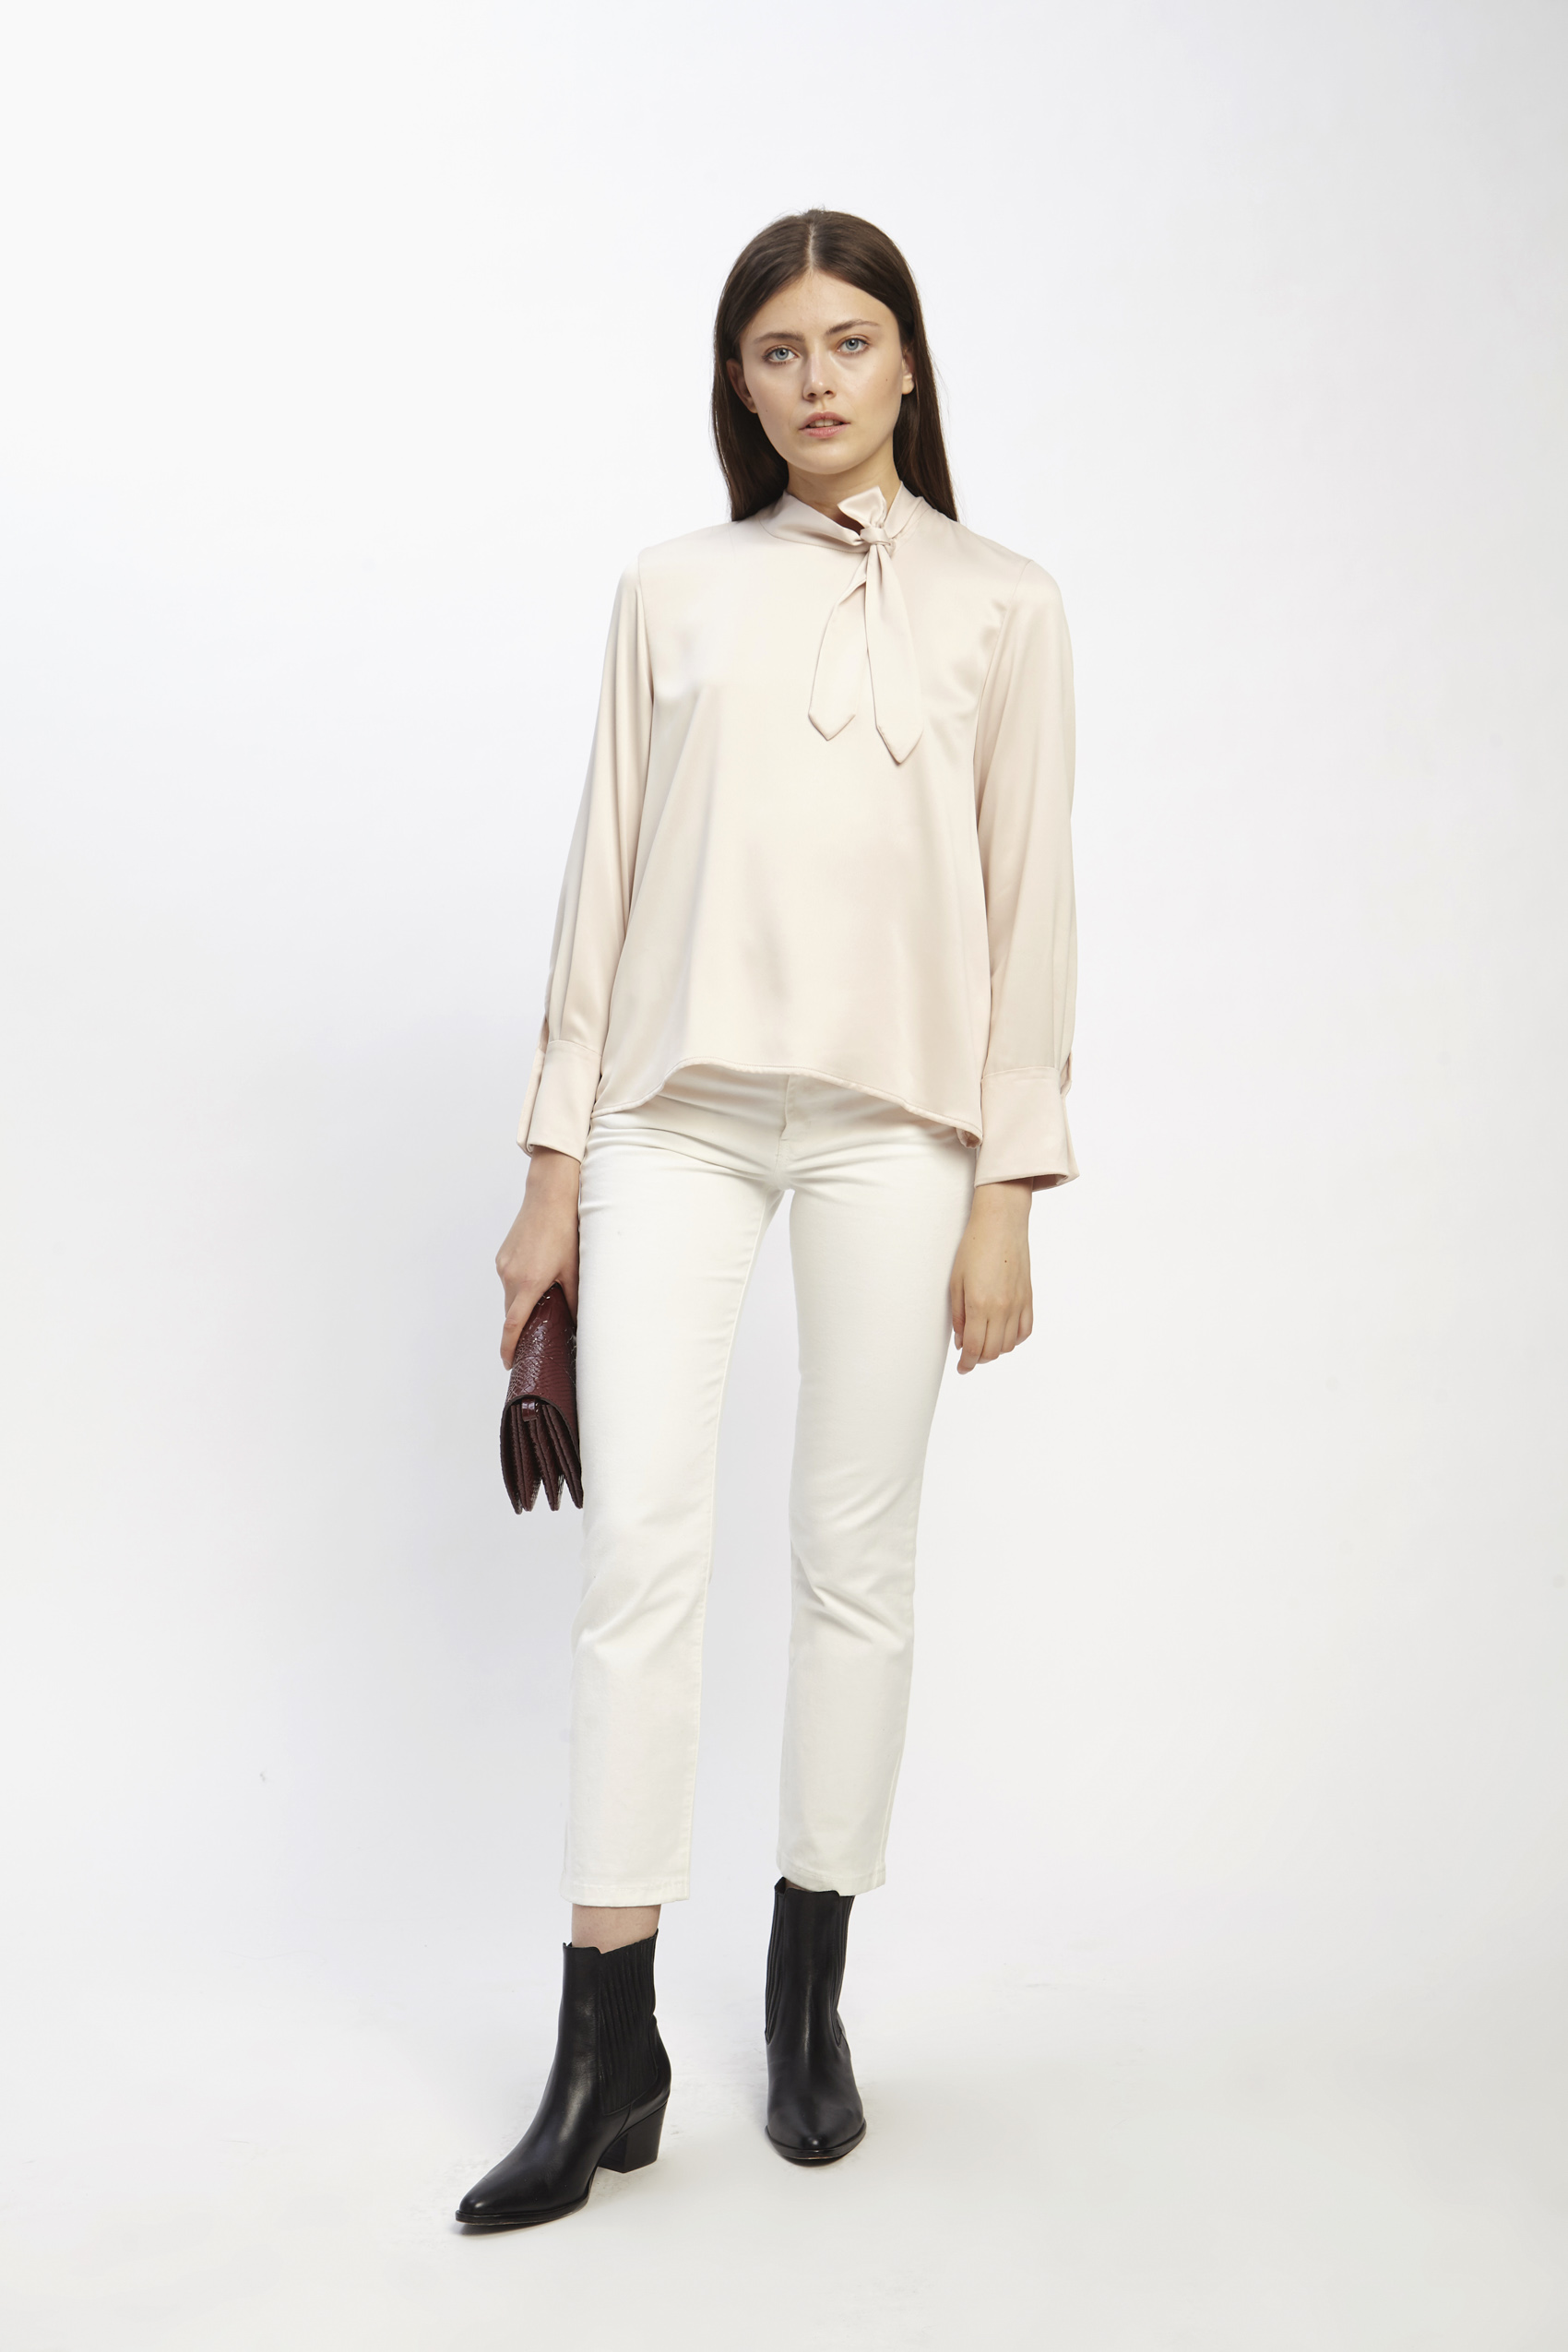 awada_blusa-helena_28-31-2020__picture-1848